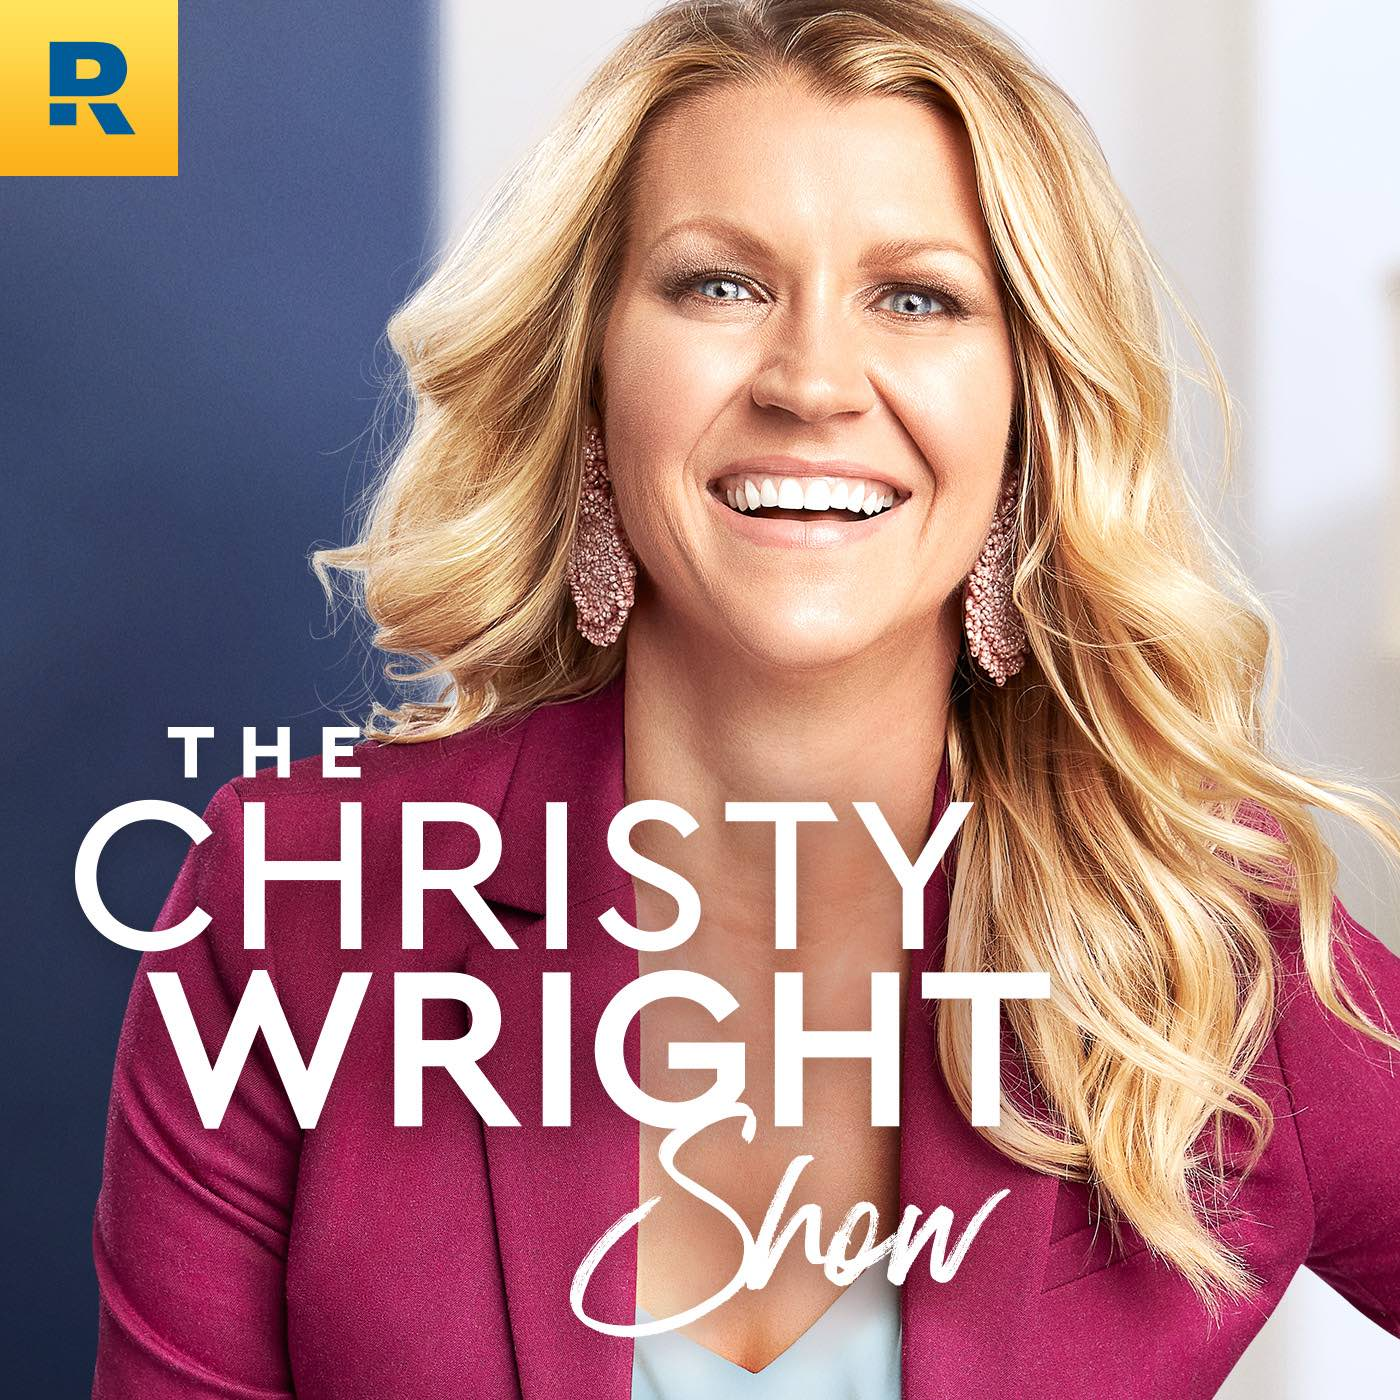 The Christy Wright Show show art